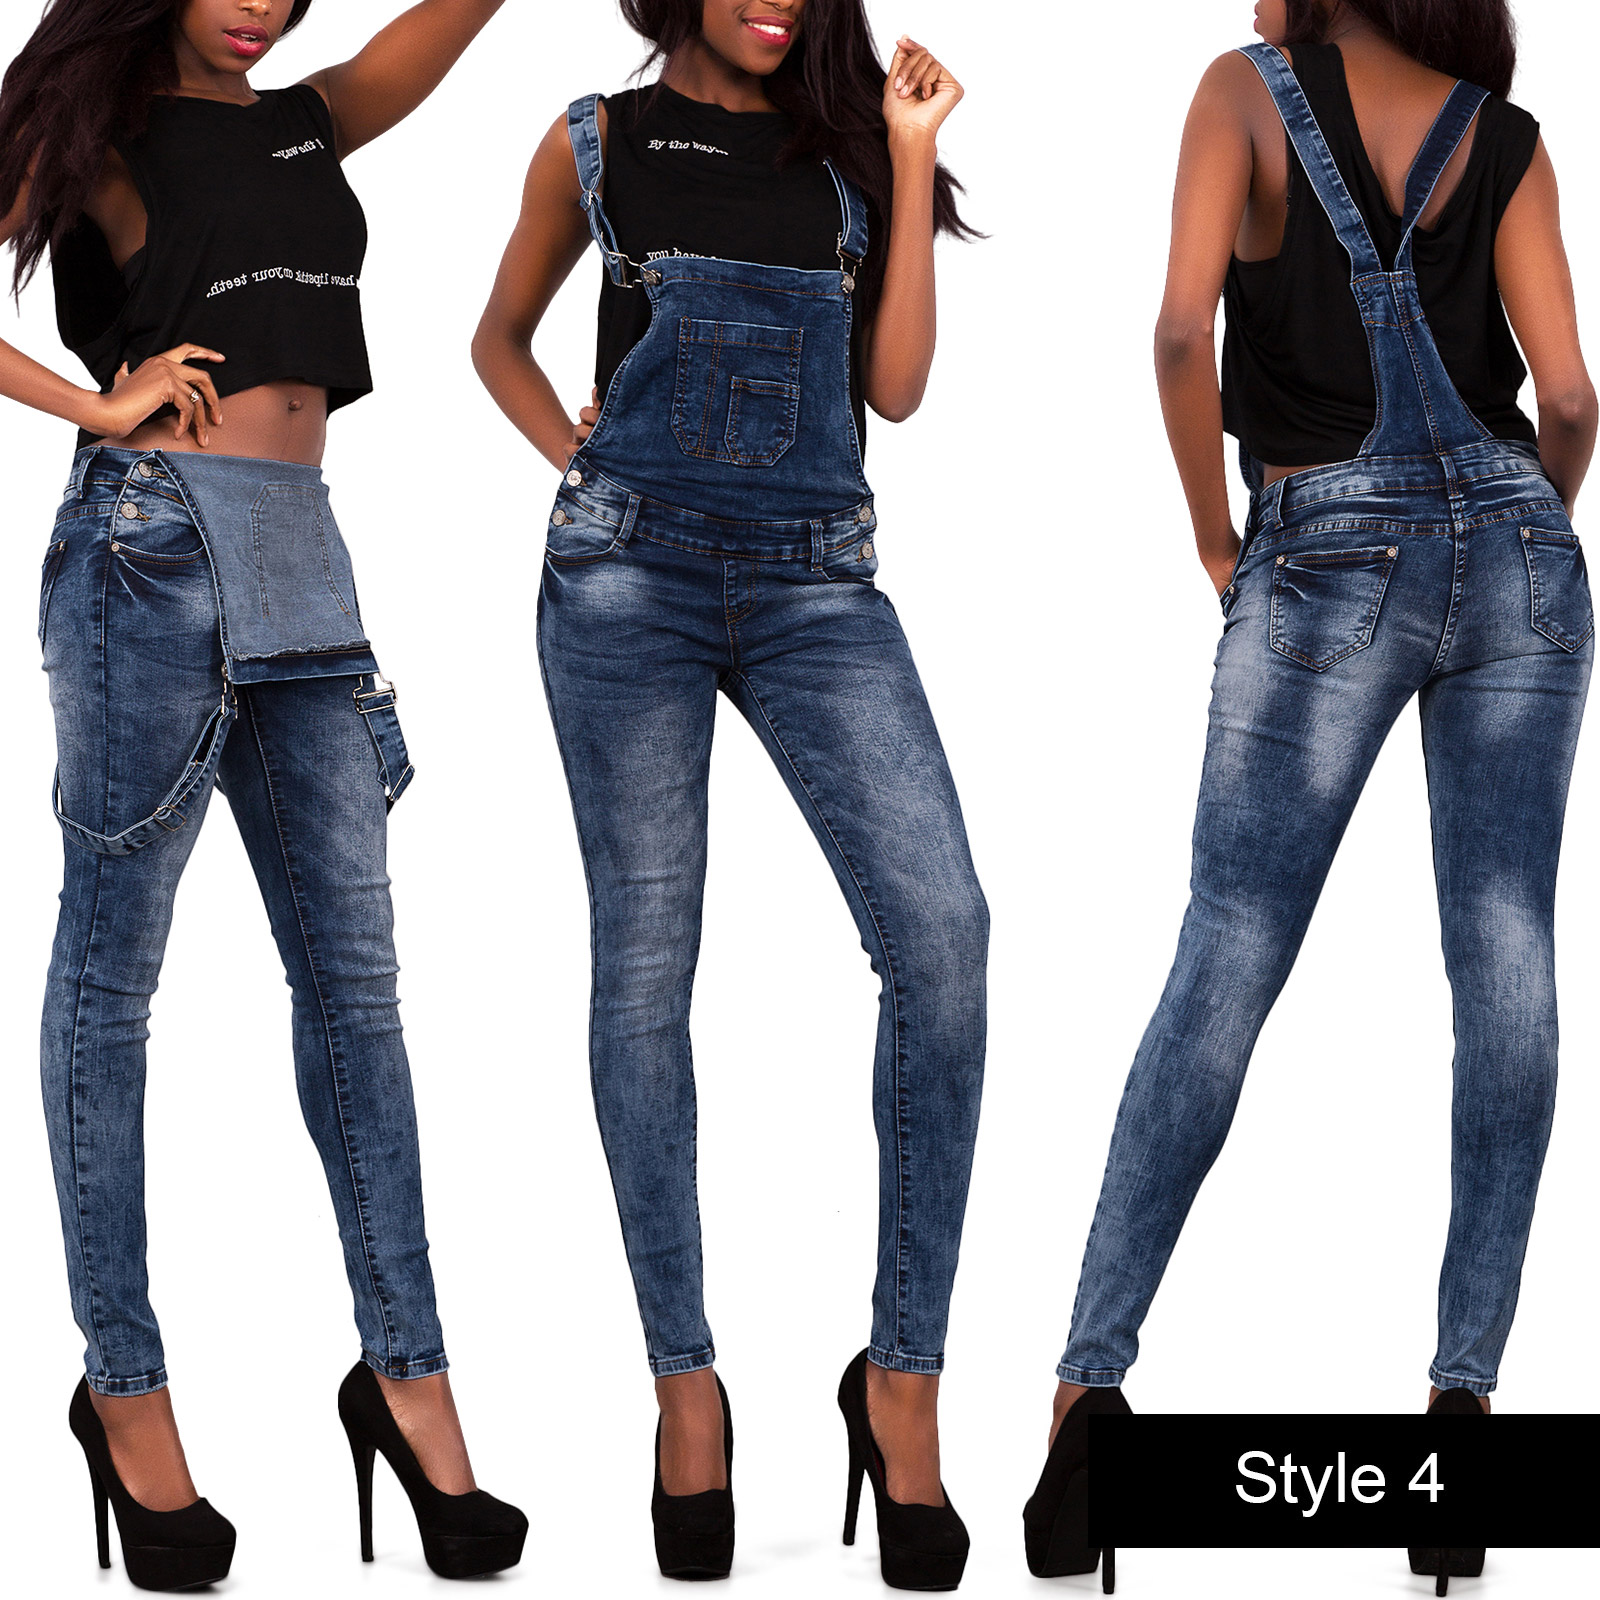 sexy womens camouflage army print jumpsuit denim catsuit skinny jean size 6 14 ebay. Black Bedroom Furniture Sets. Home Design Ideas